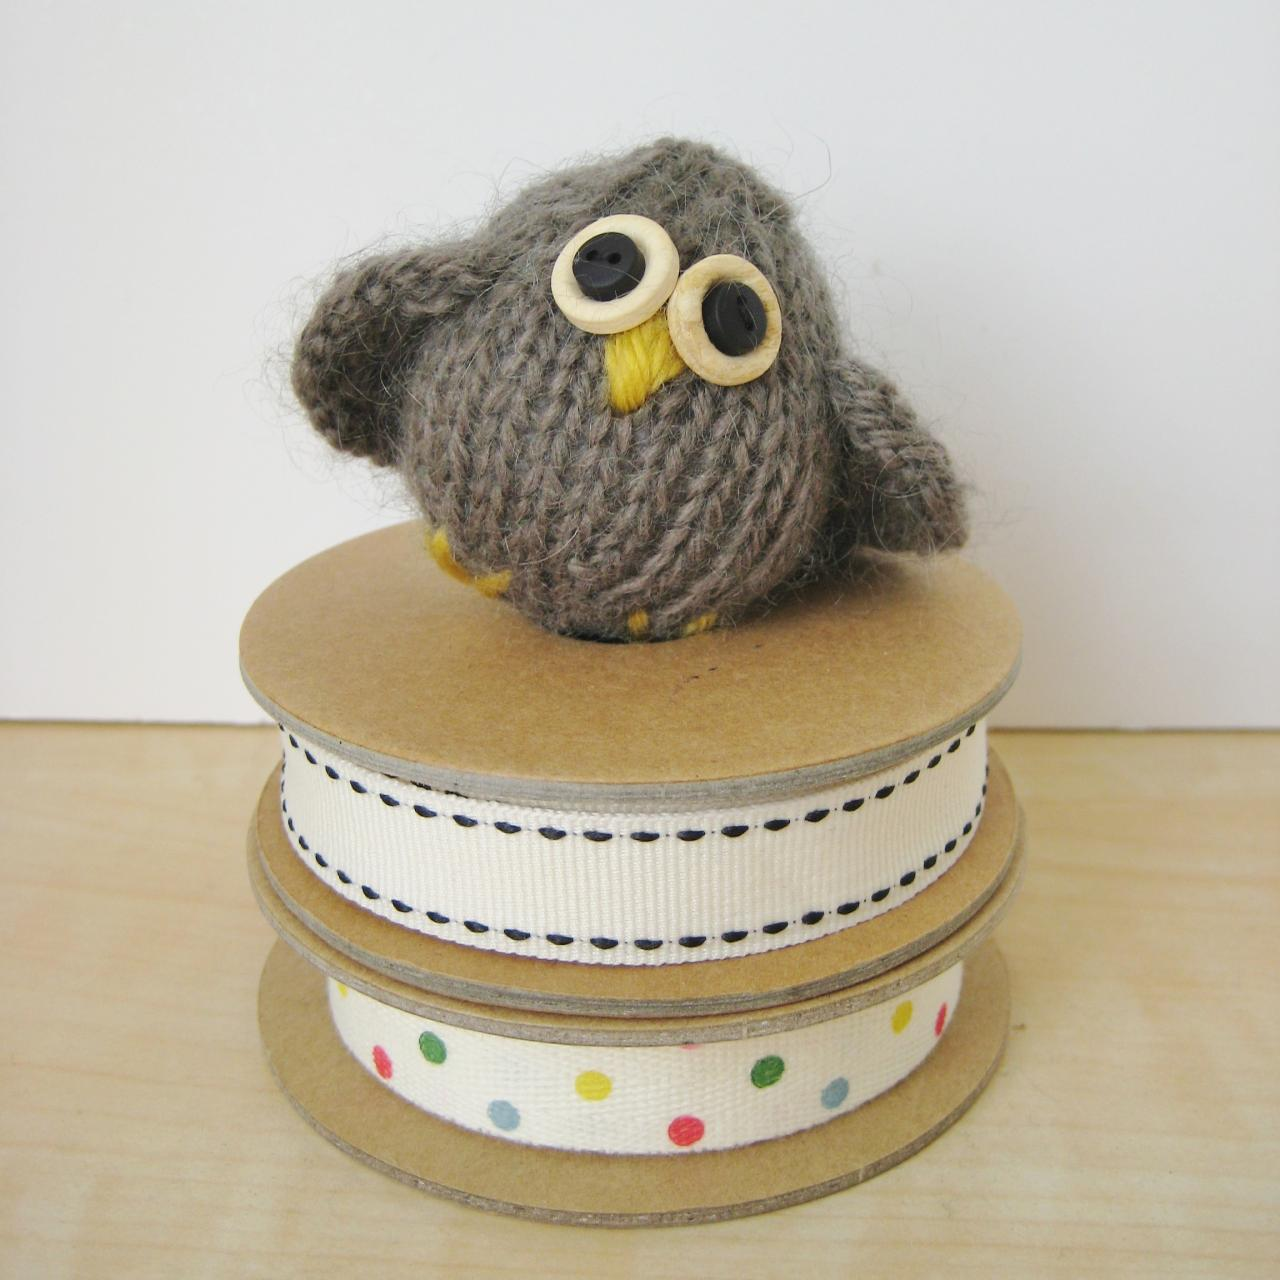 Disney Knitting Patterns Free : Little Owl Toy Knitting Pattern on Luulla